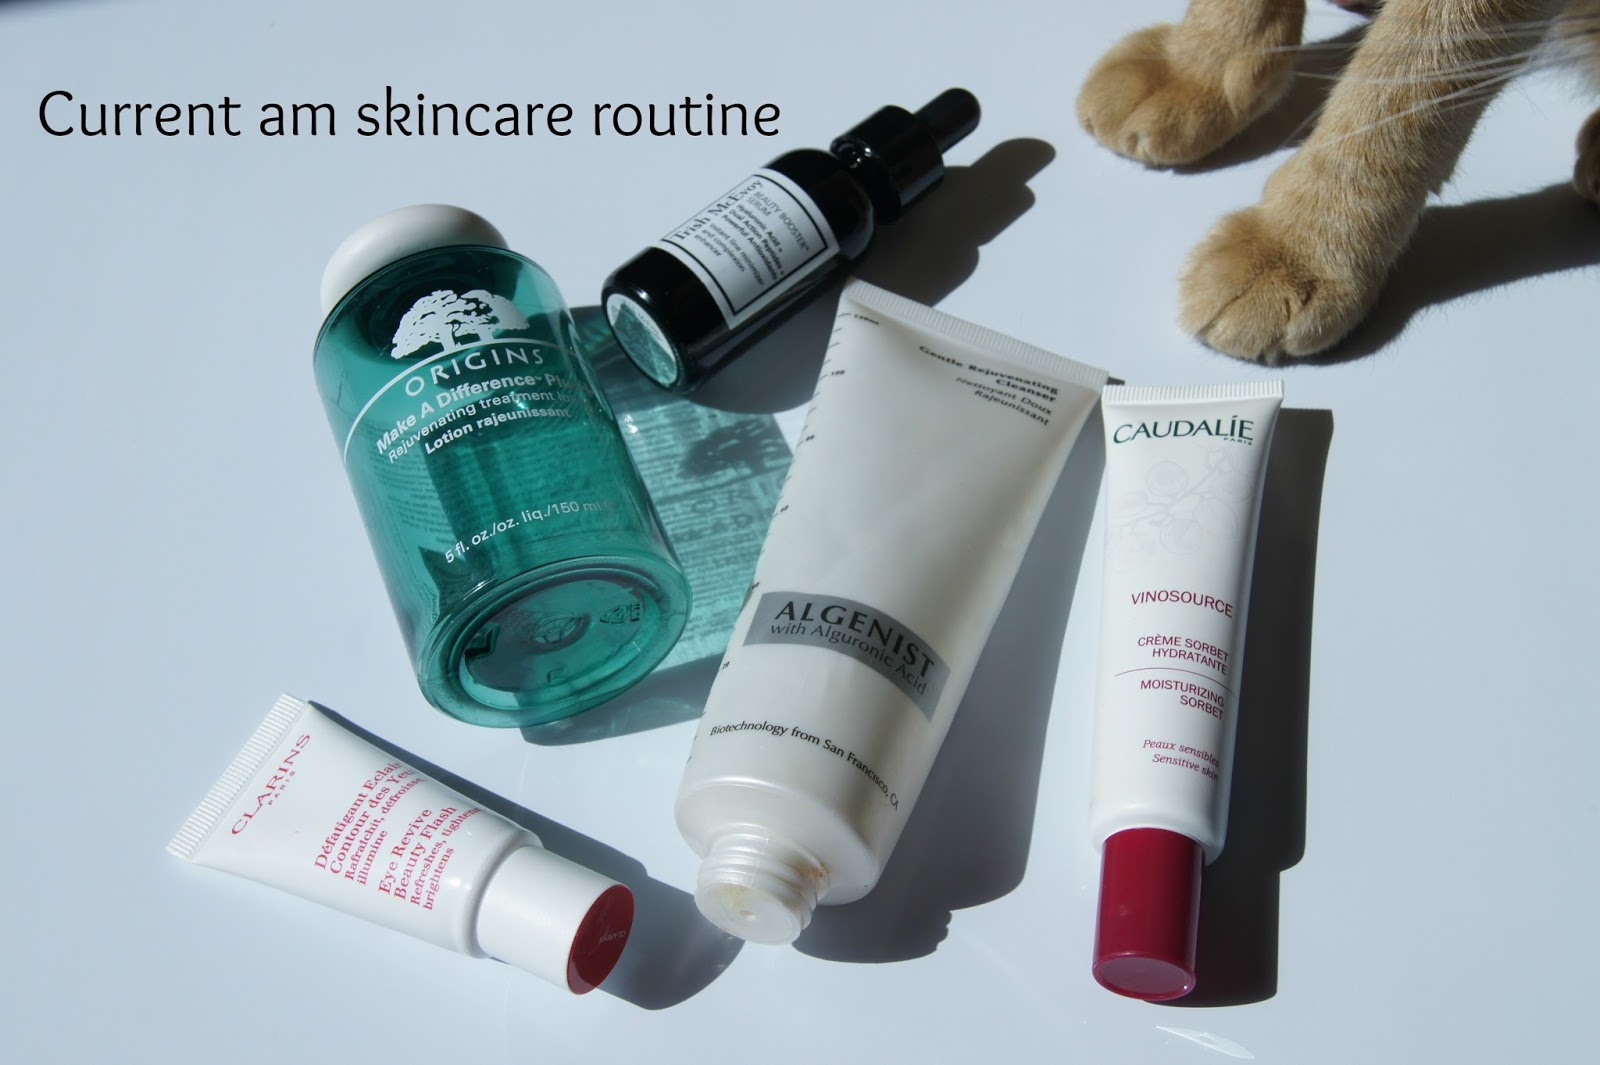 Current am skincare routine